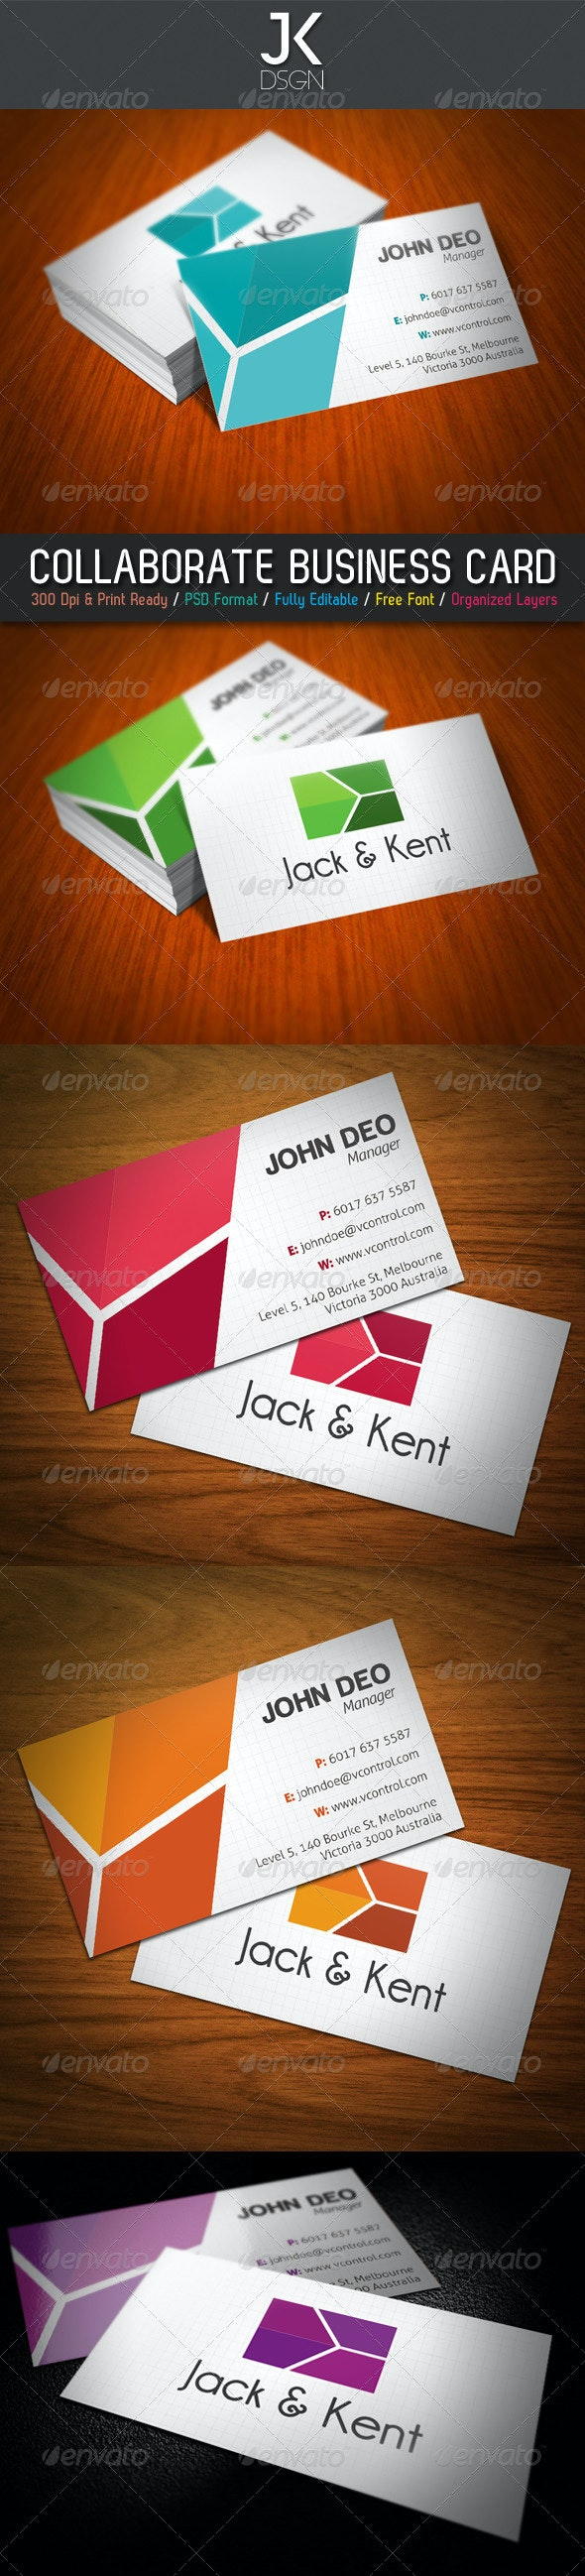 JK Collaborate Business Card - Corporate Business Cards